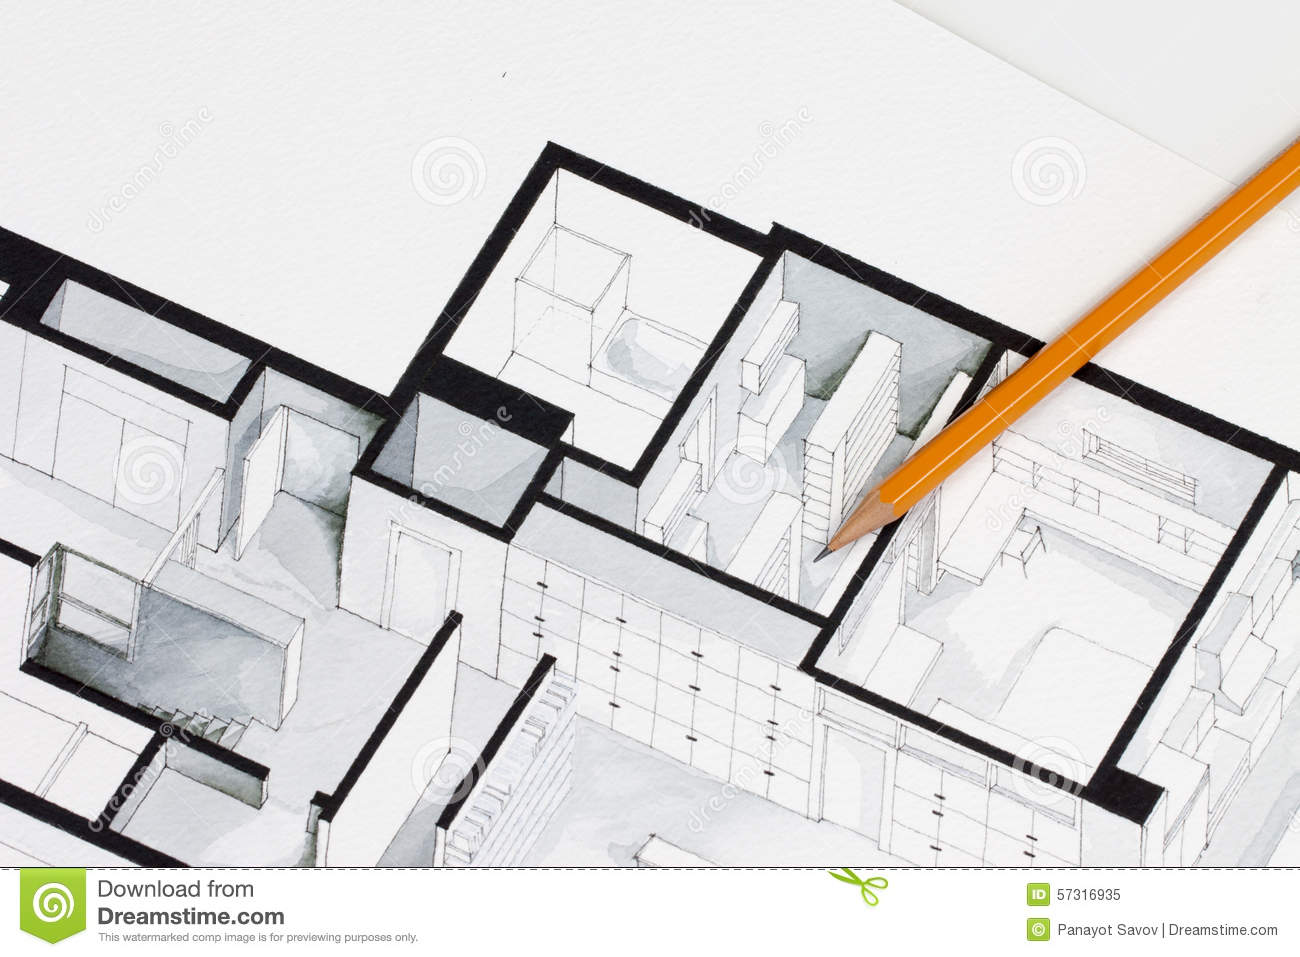 6 Bedroom Floor Plans Sharp Orange Glazed Regular Pencil On Isometric Floor Plan